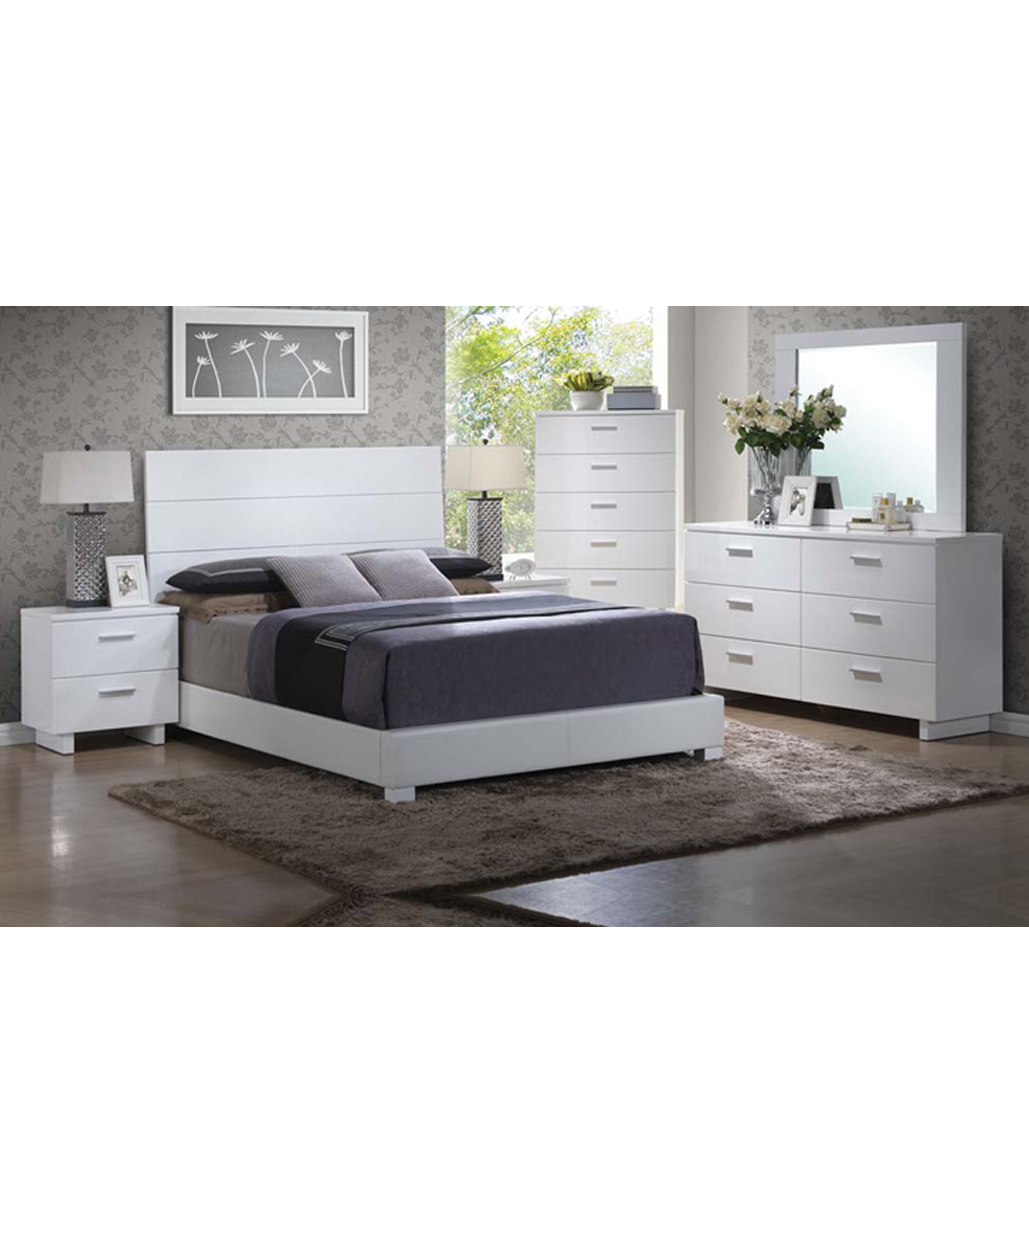 Allyson Bedroom Set